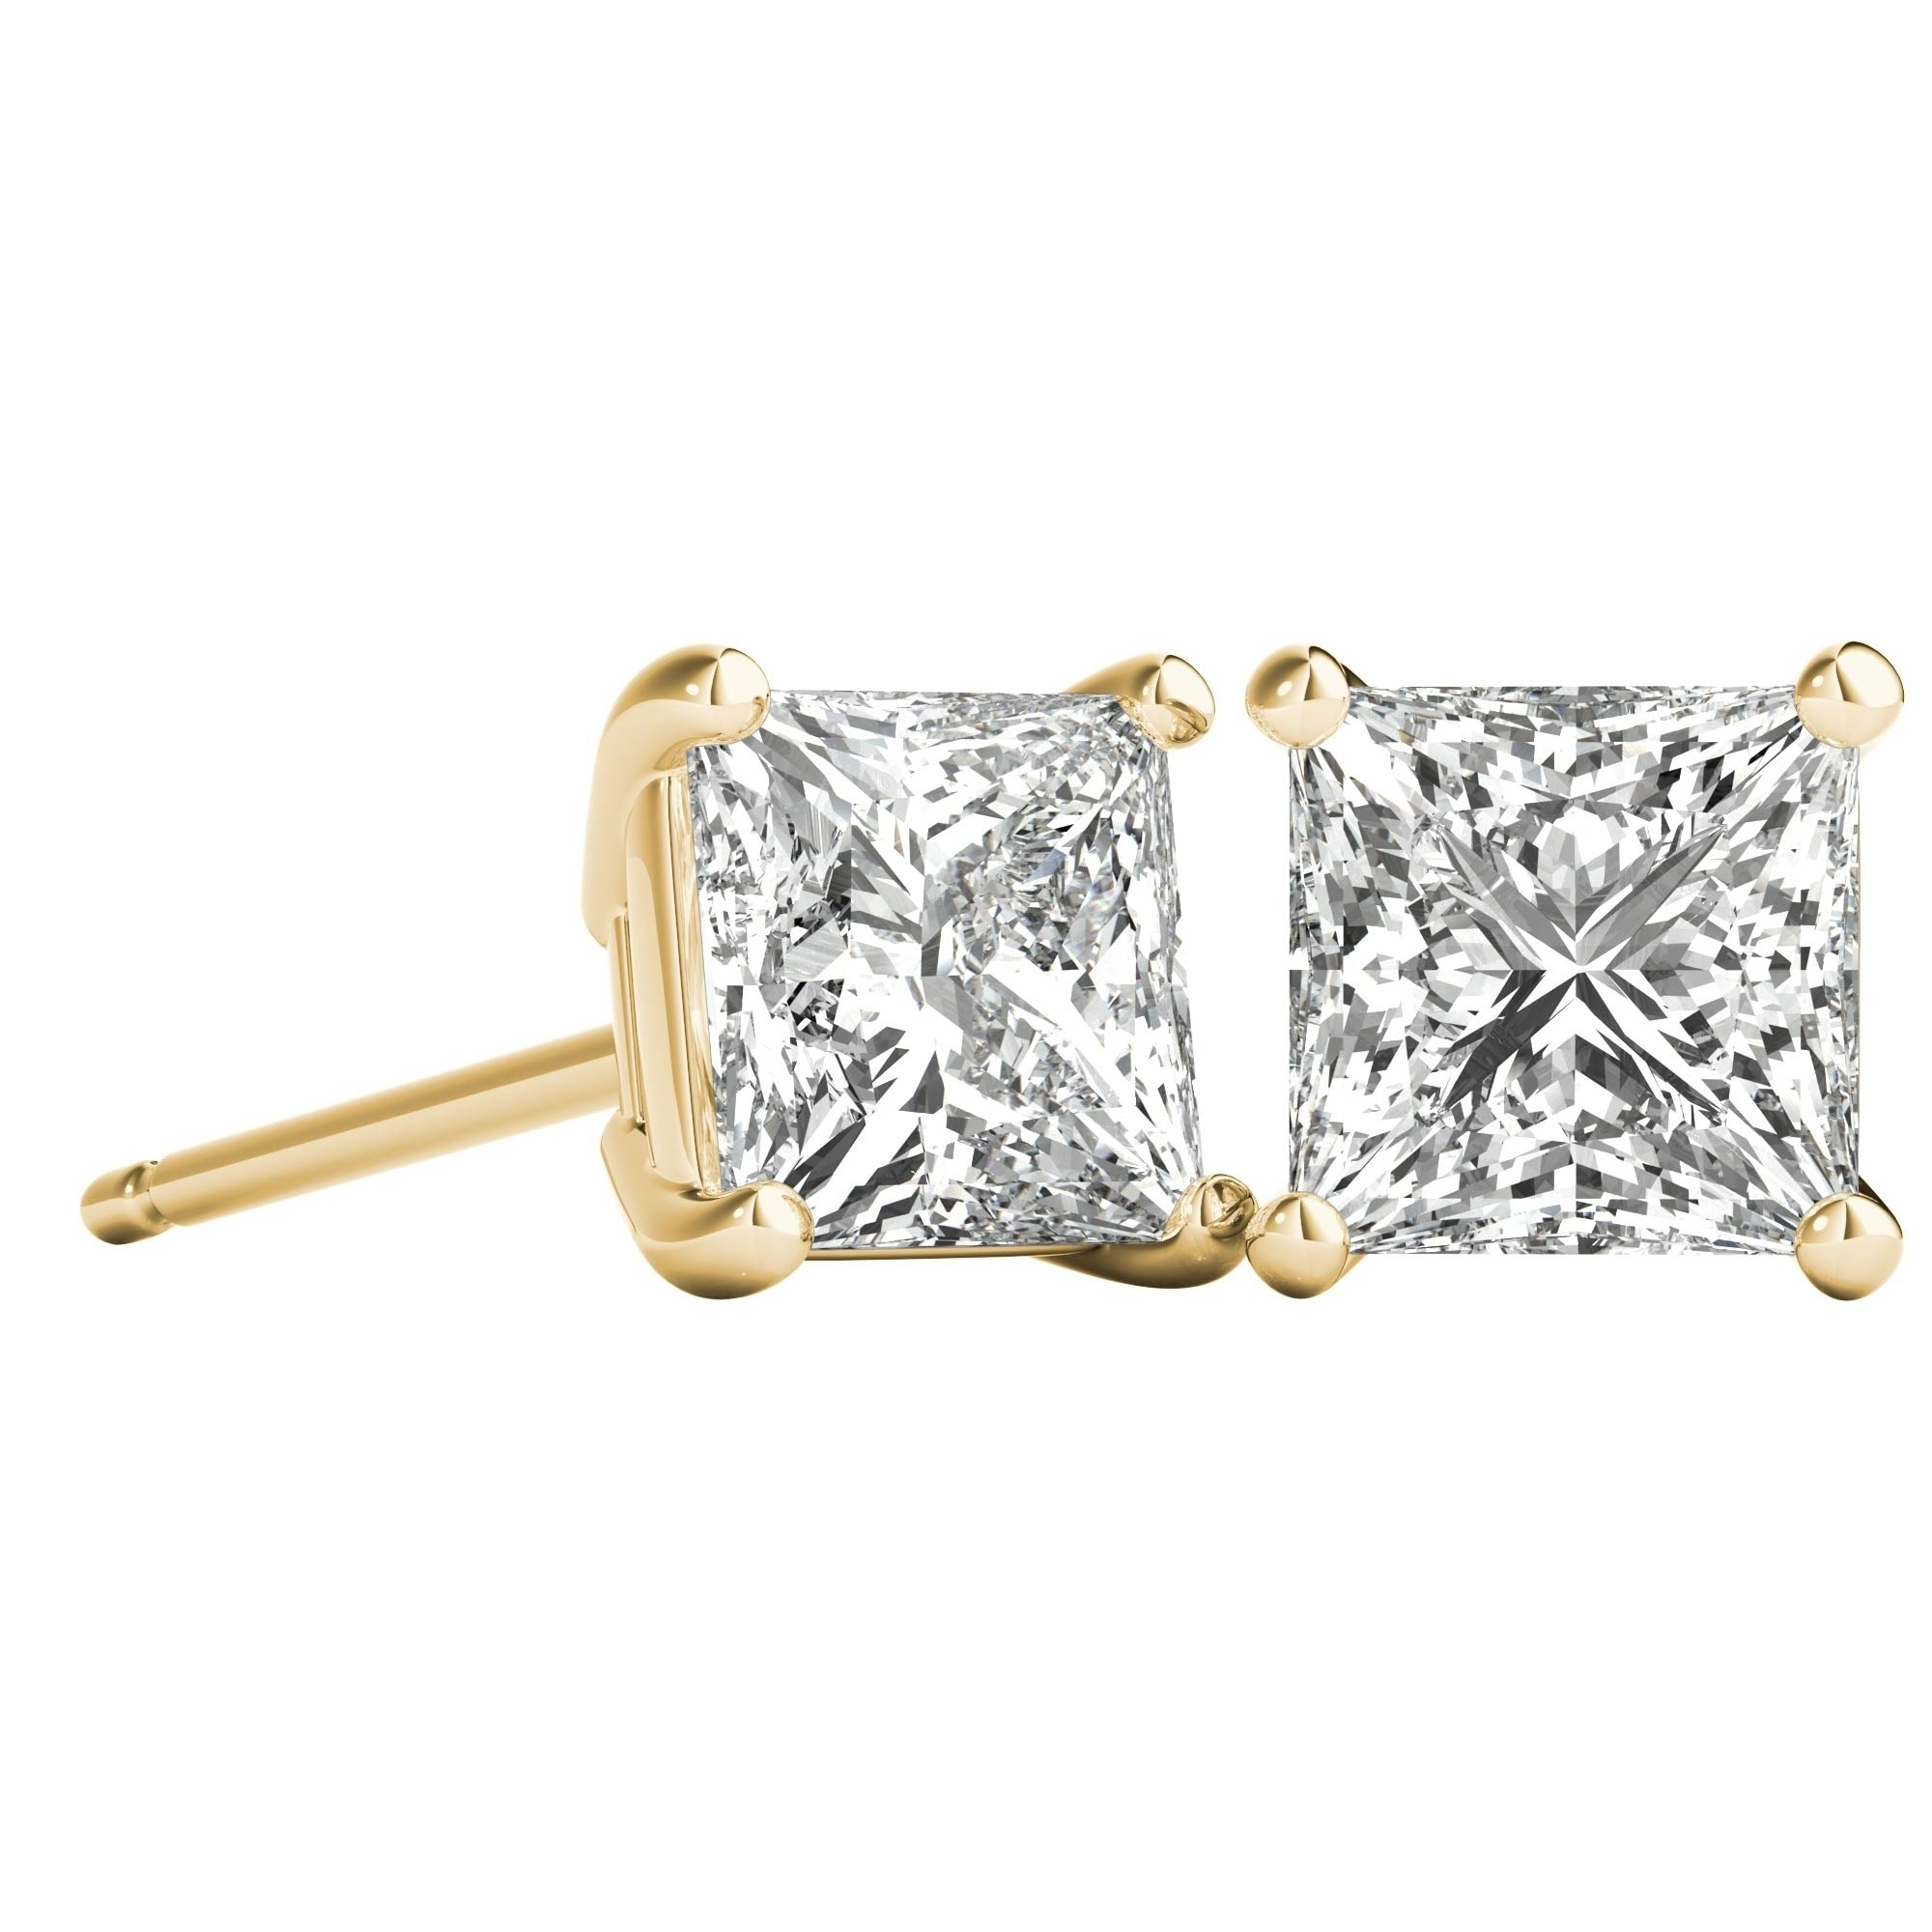 e5ab625c3 Shop Seraphina 18k Gold 1ct TDW Princess Cut Diamond Solitaire Stud  Earrings - Free Shipping Today - Overstock - 21220465